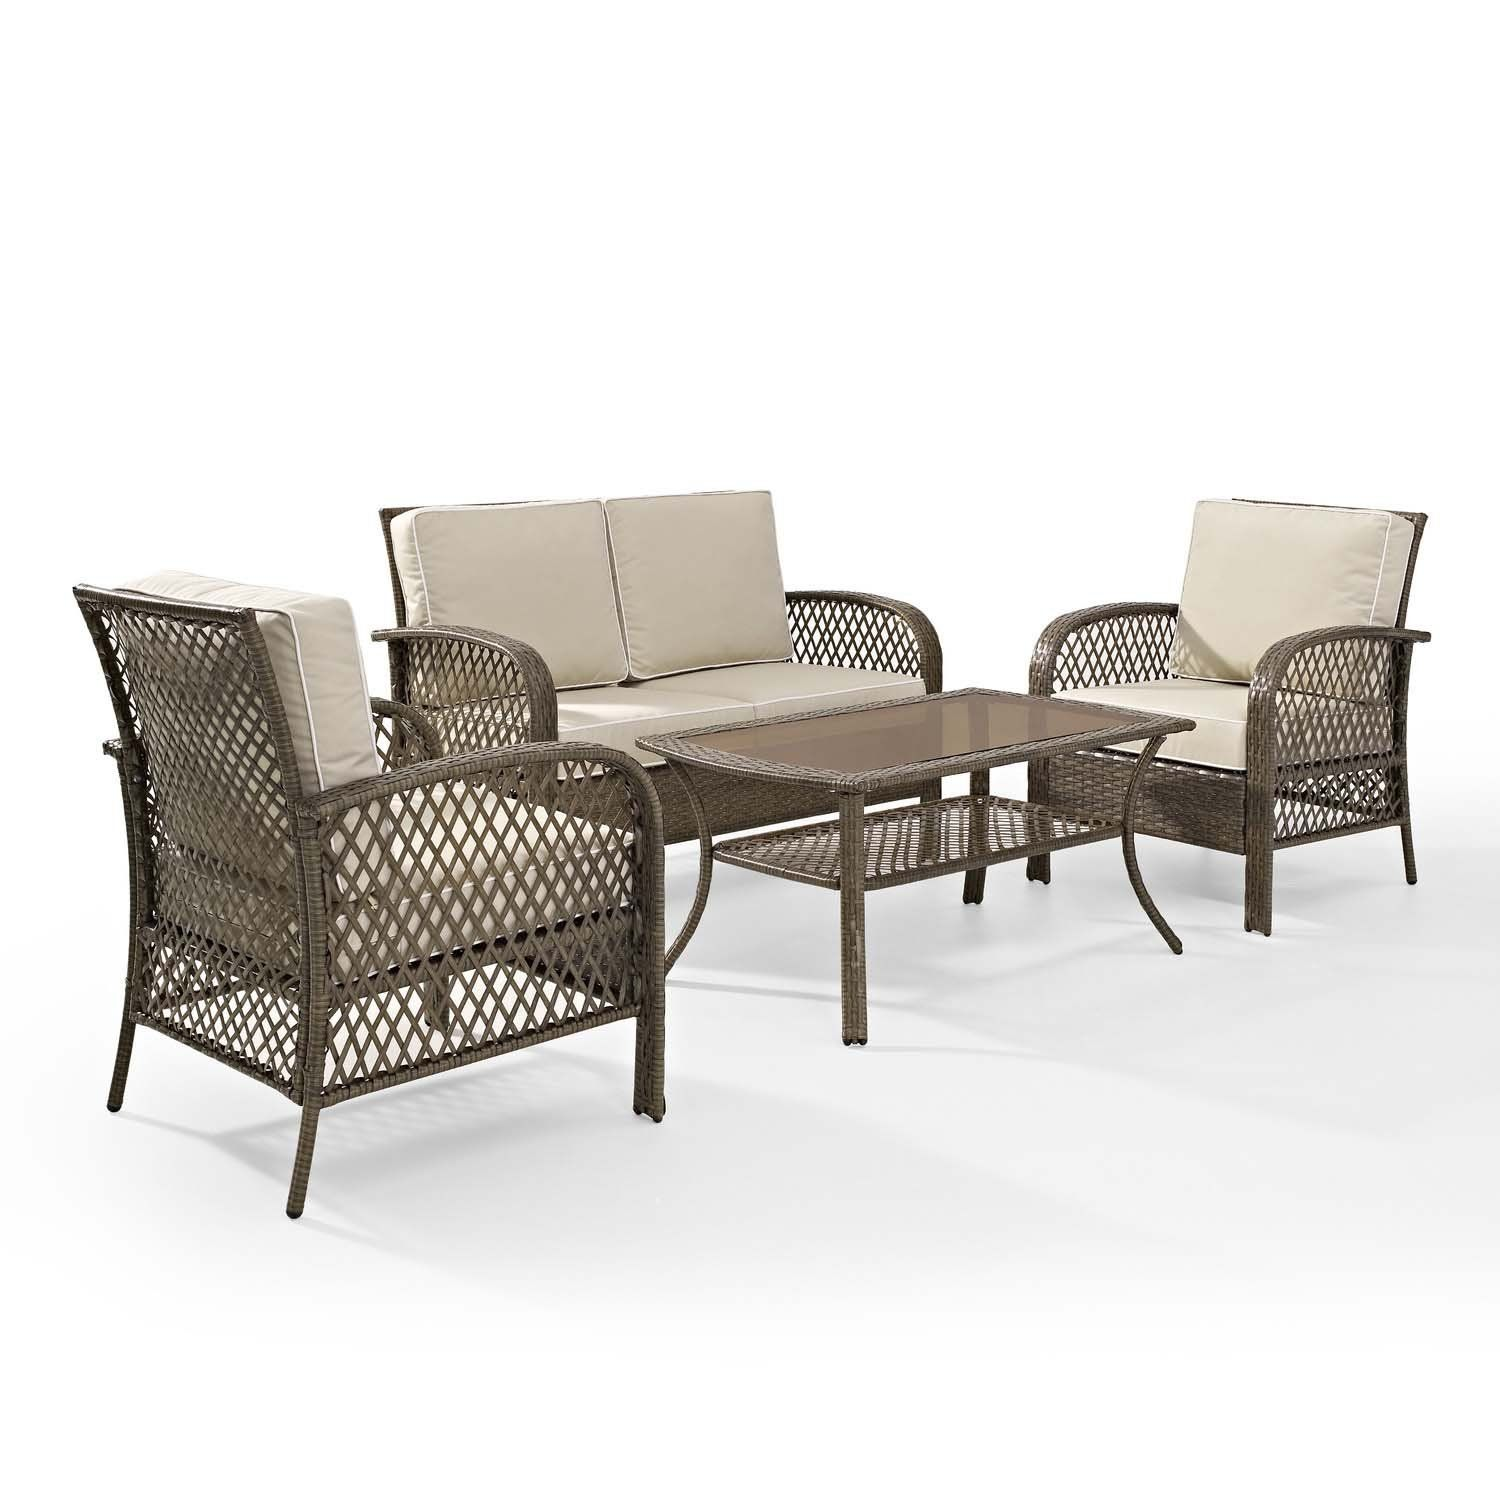 Tribeca 4 Piece Deep Seating Group Outdoor Patio Conversation Set A Uv Protection Wicker Ra With Images Outdoor Wicker Seating Patio Sofa Set Traditional Patio Furniture